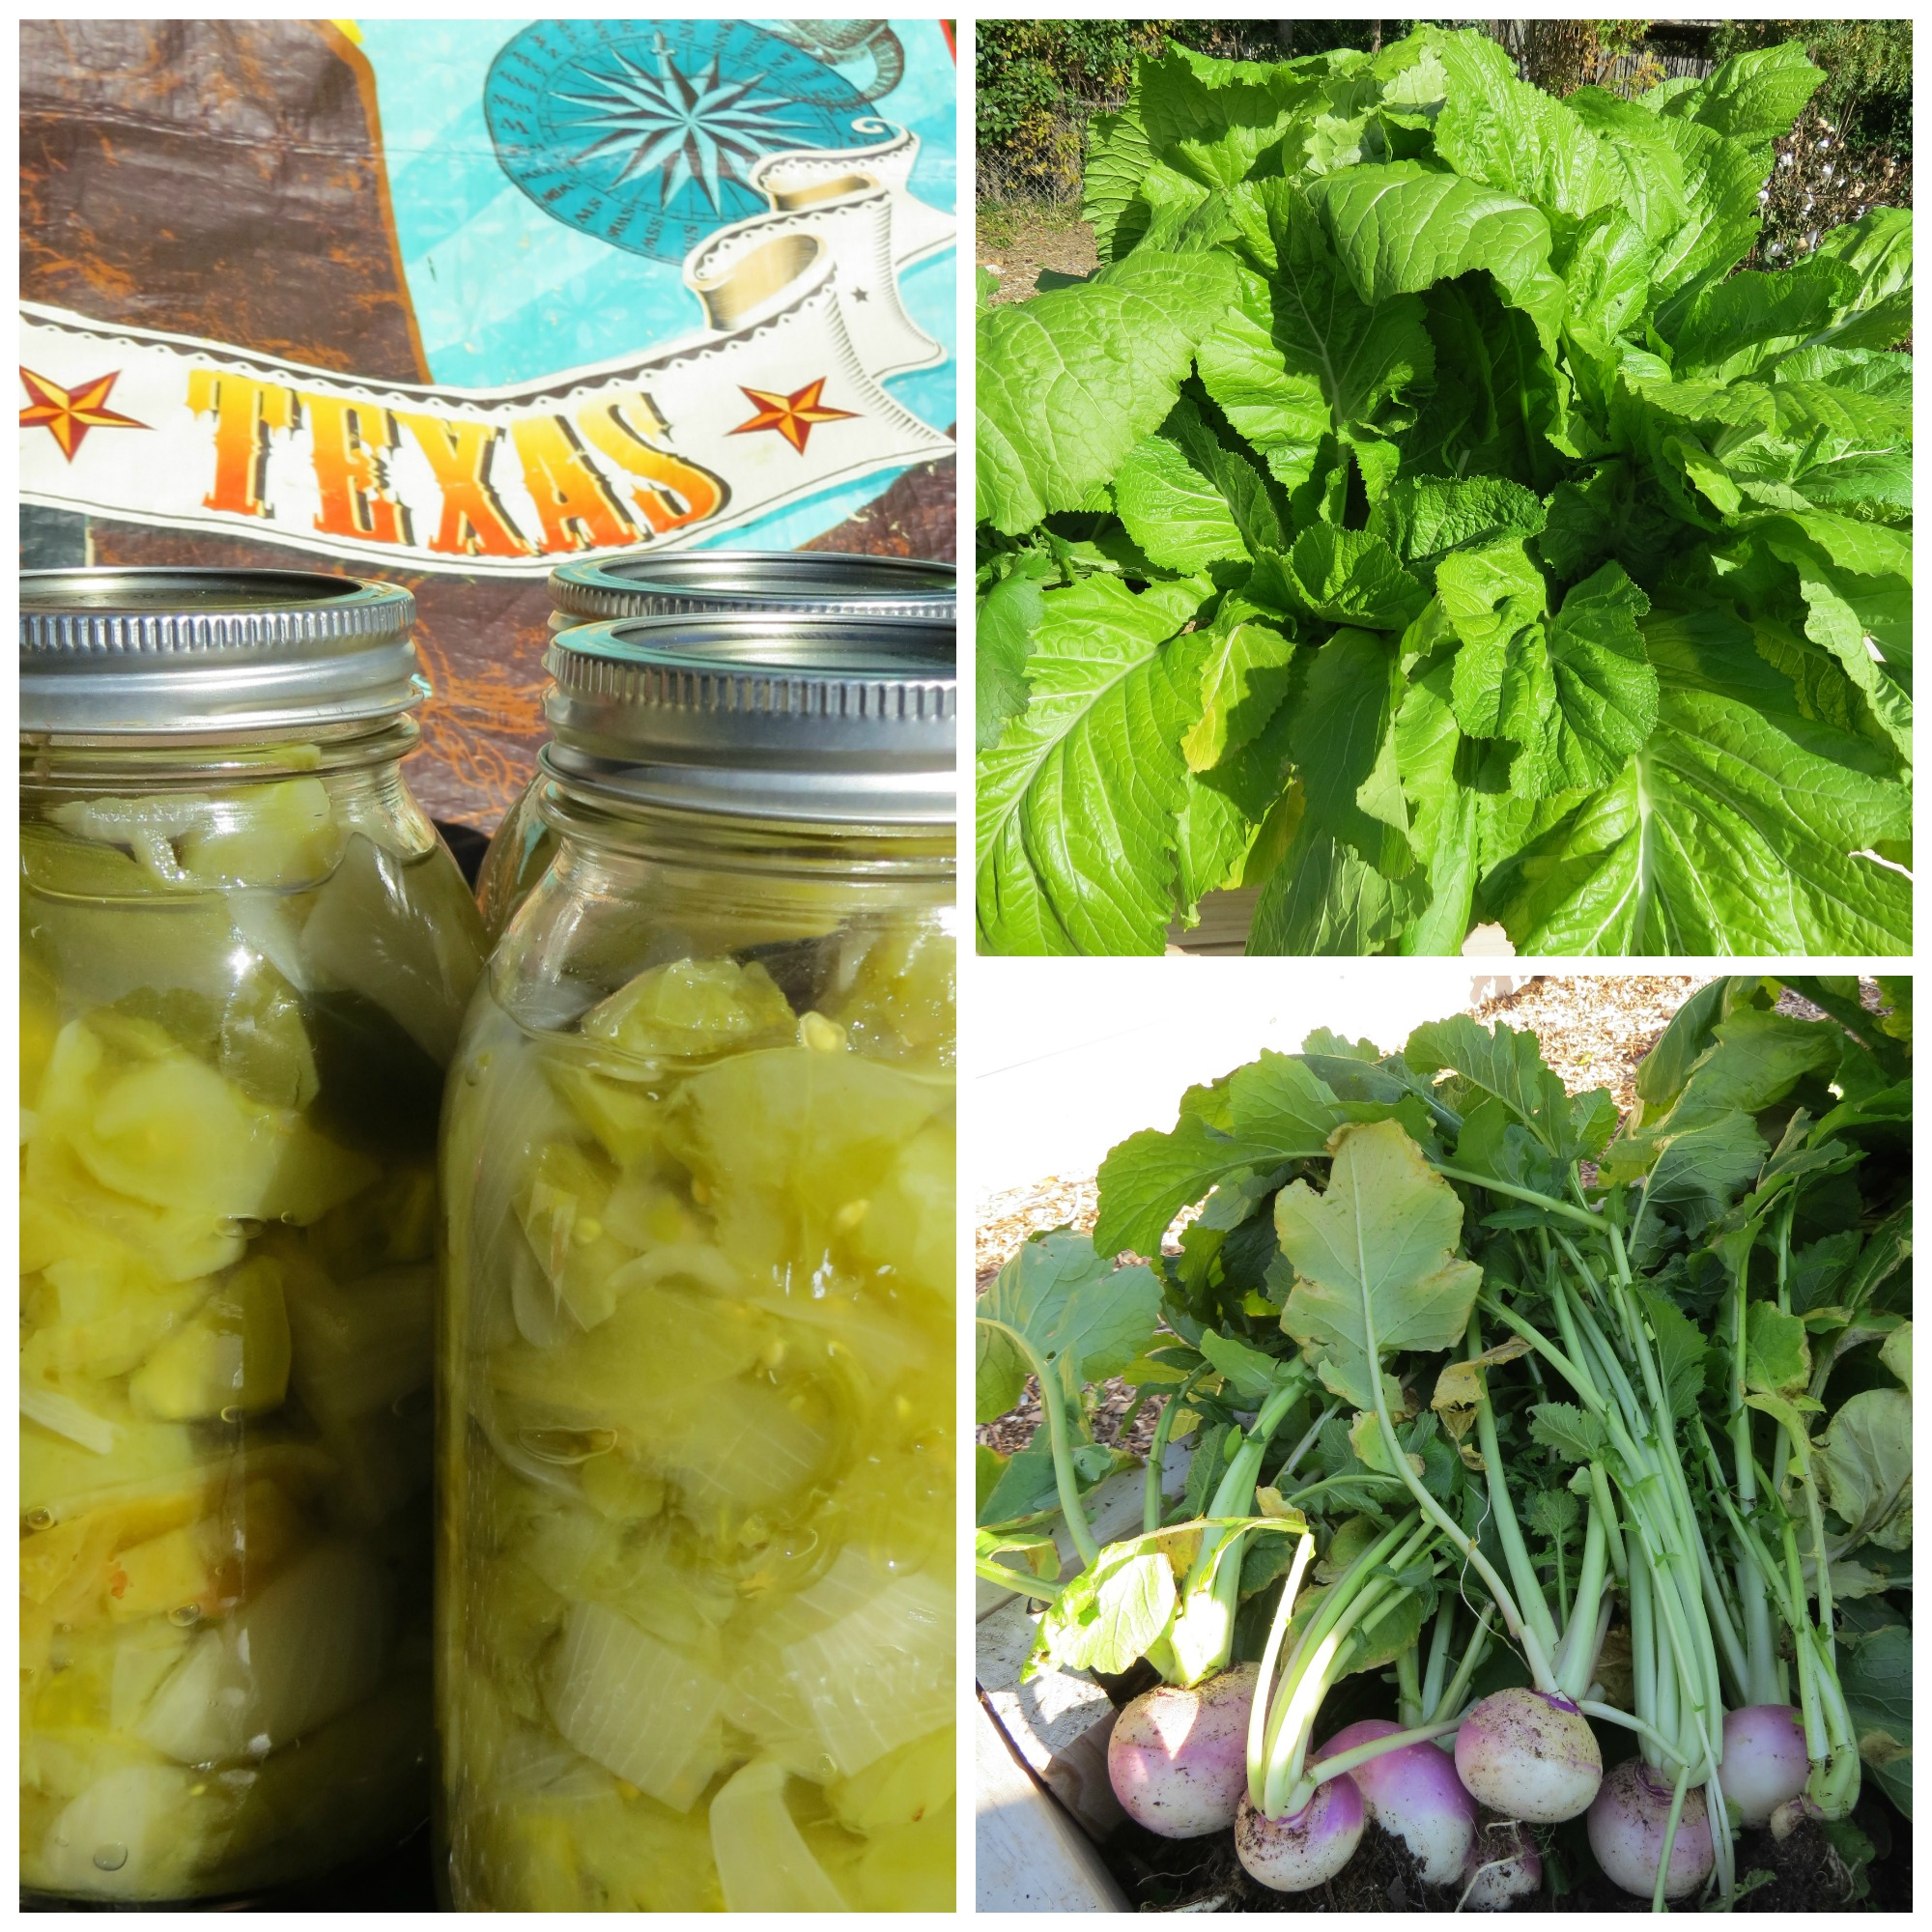 Chow Chow, Mustard Greens and Turnips